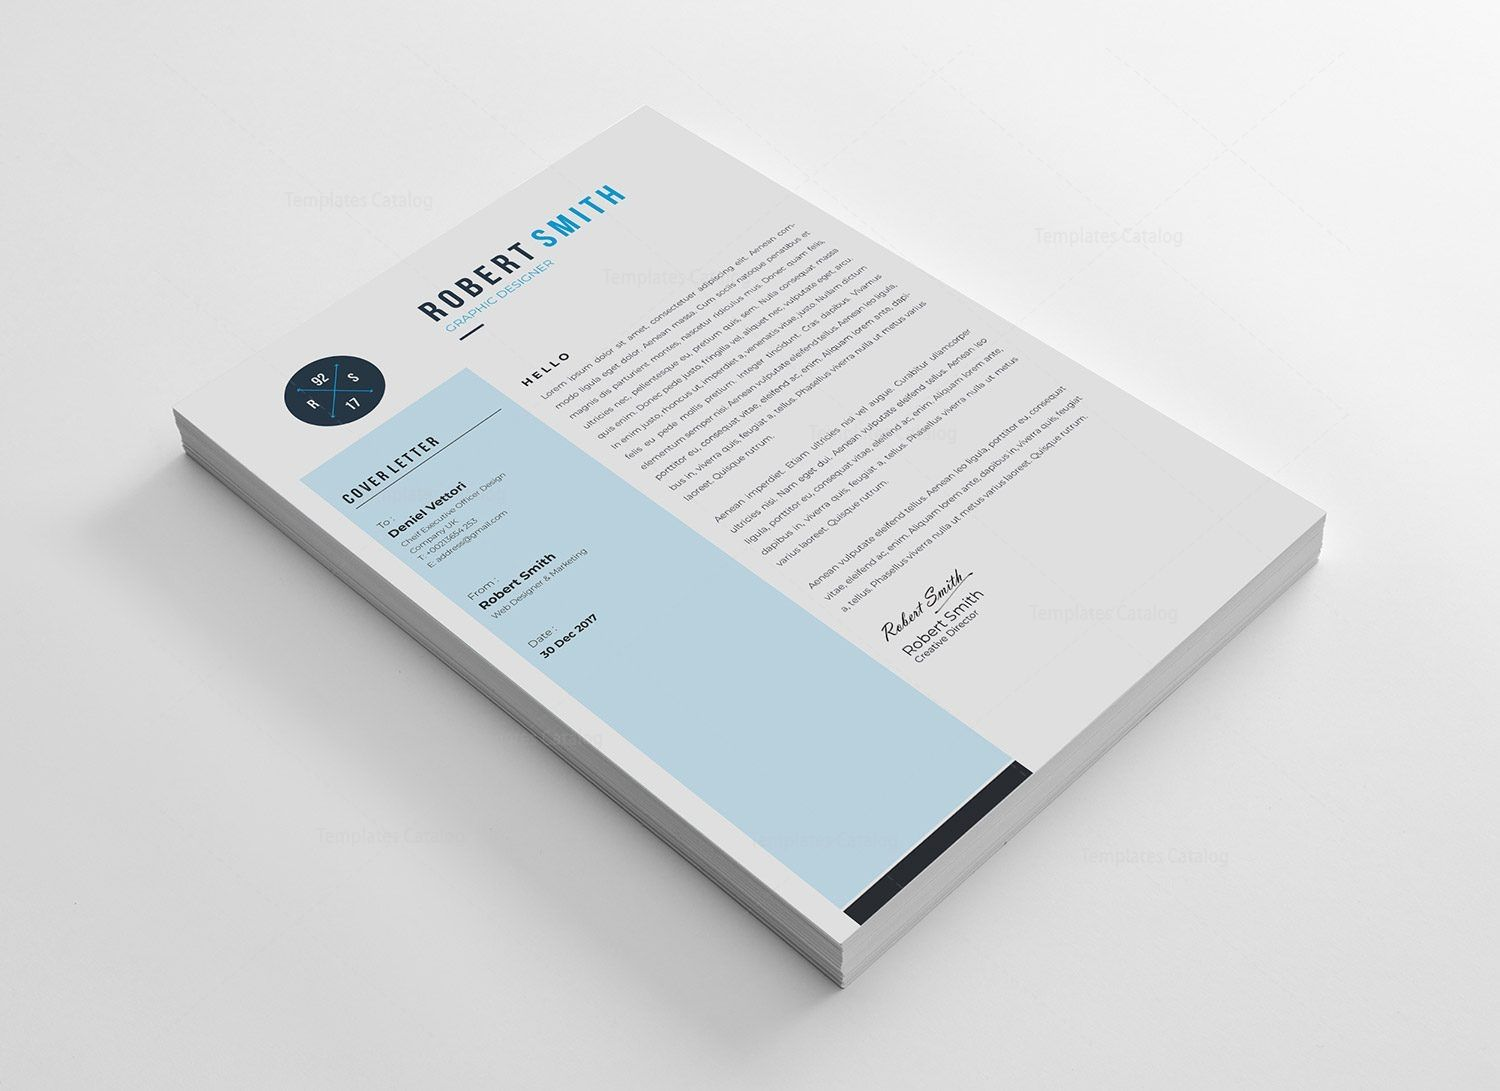 A4 Clean Resume Template 002977 - Clean resume template, Clean resume, Resume template, Resume, Resume design template, Resume design - A4 Clean Resume Template  The perfect way to make the best impression  Strong typographic structure and very easy to use and customize  The resume template